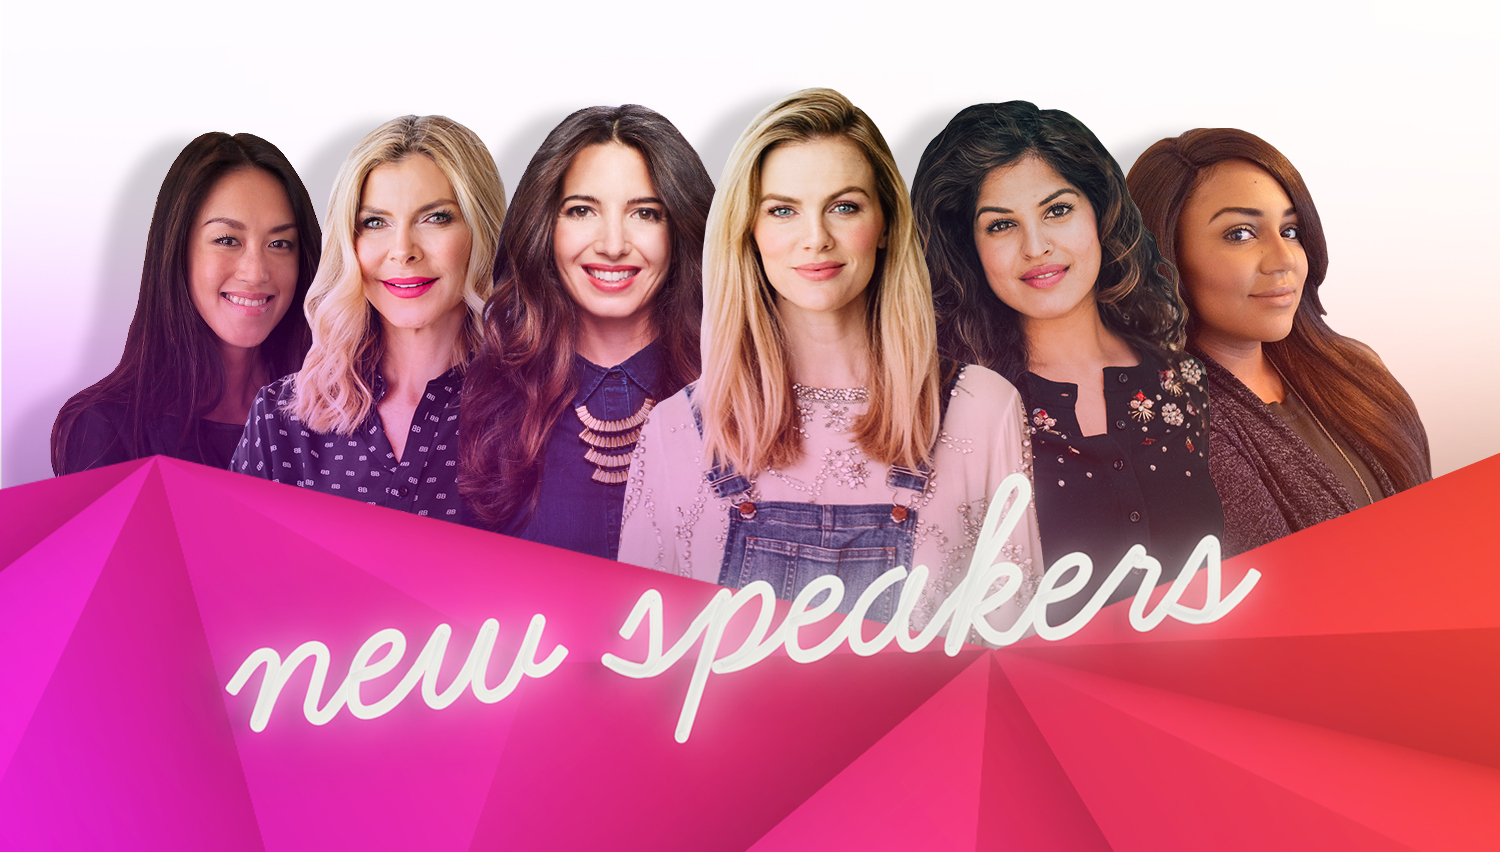 Help Us Welcome Our New Speakers - We are thrilled to kick off our first week of speaker announcements with six impressive entrepreneurs, influencers and industry thought leaders.